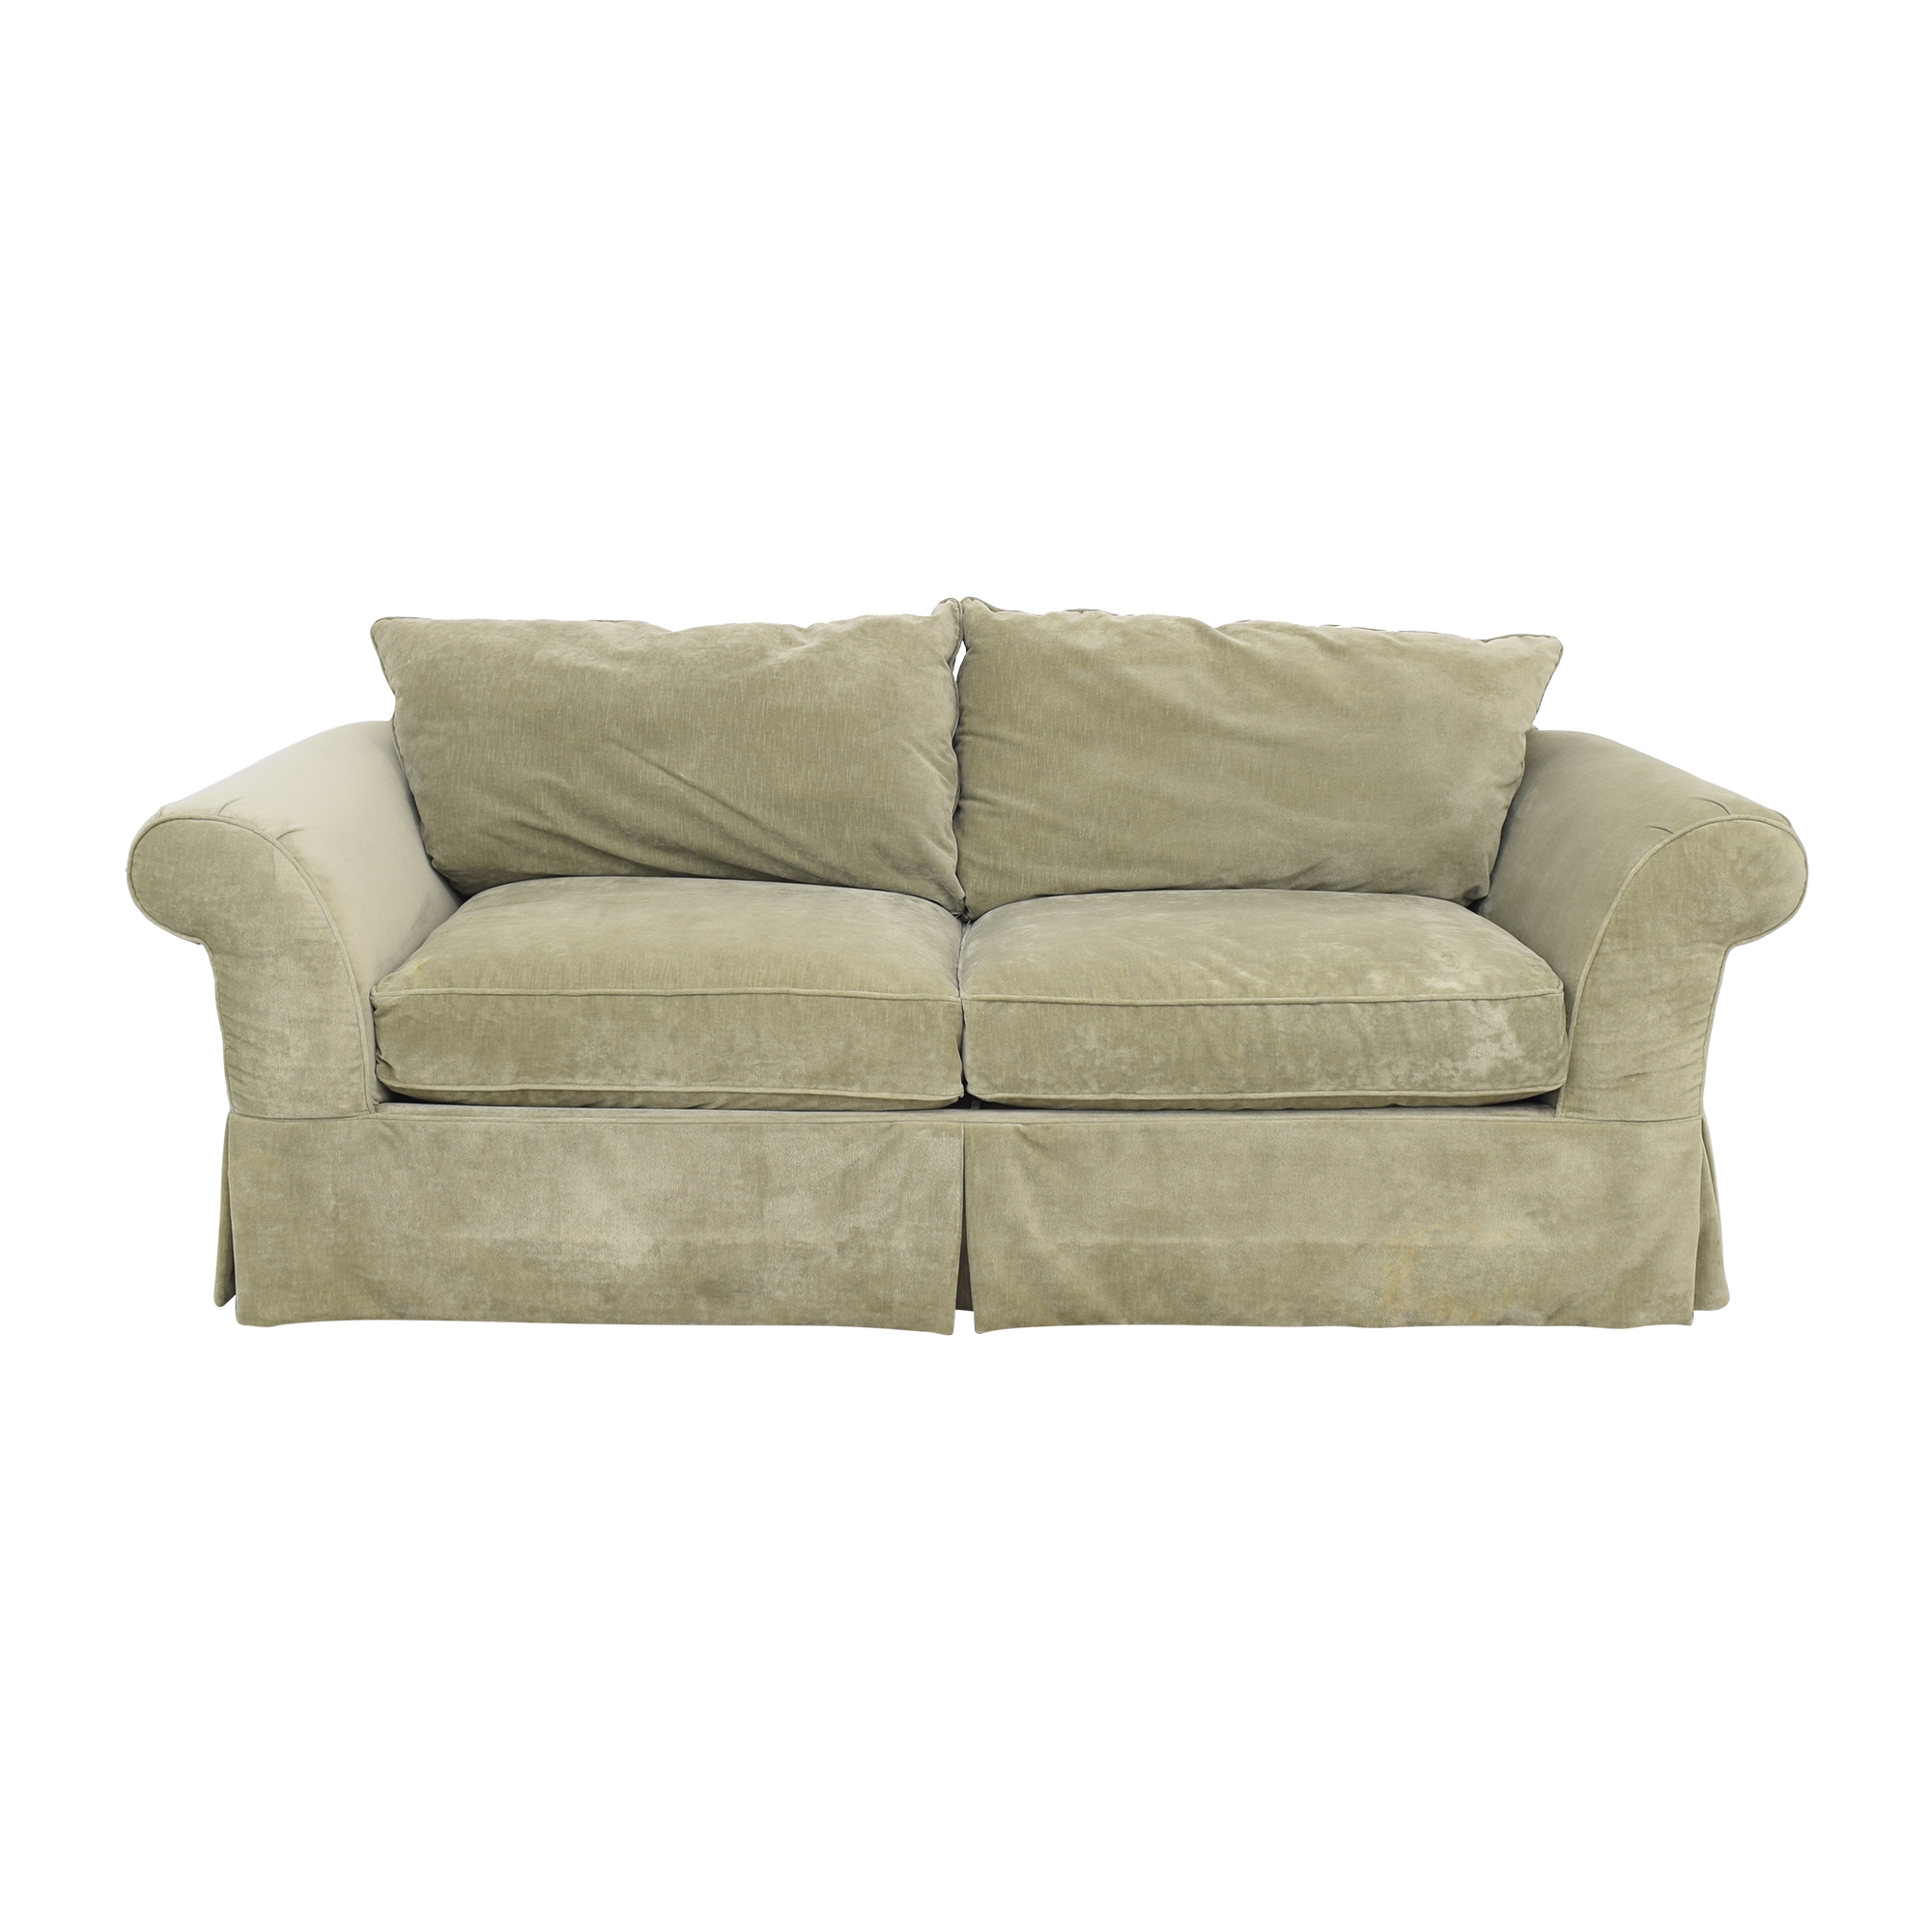 Domain Skirted Sofa / Classic Sofas